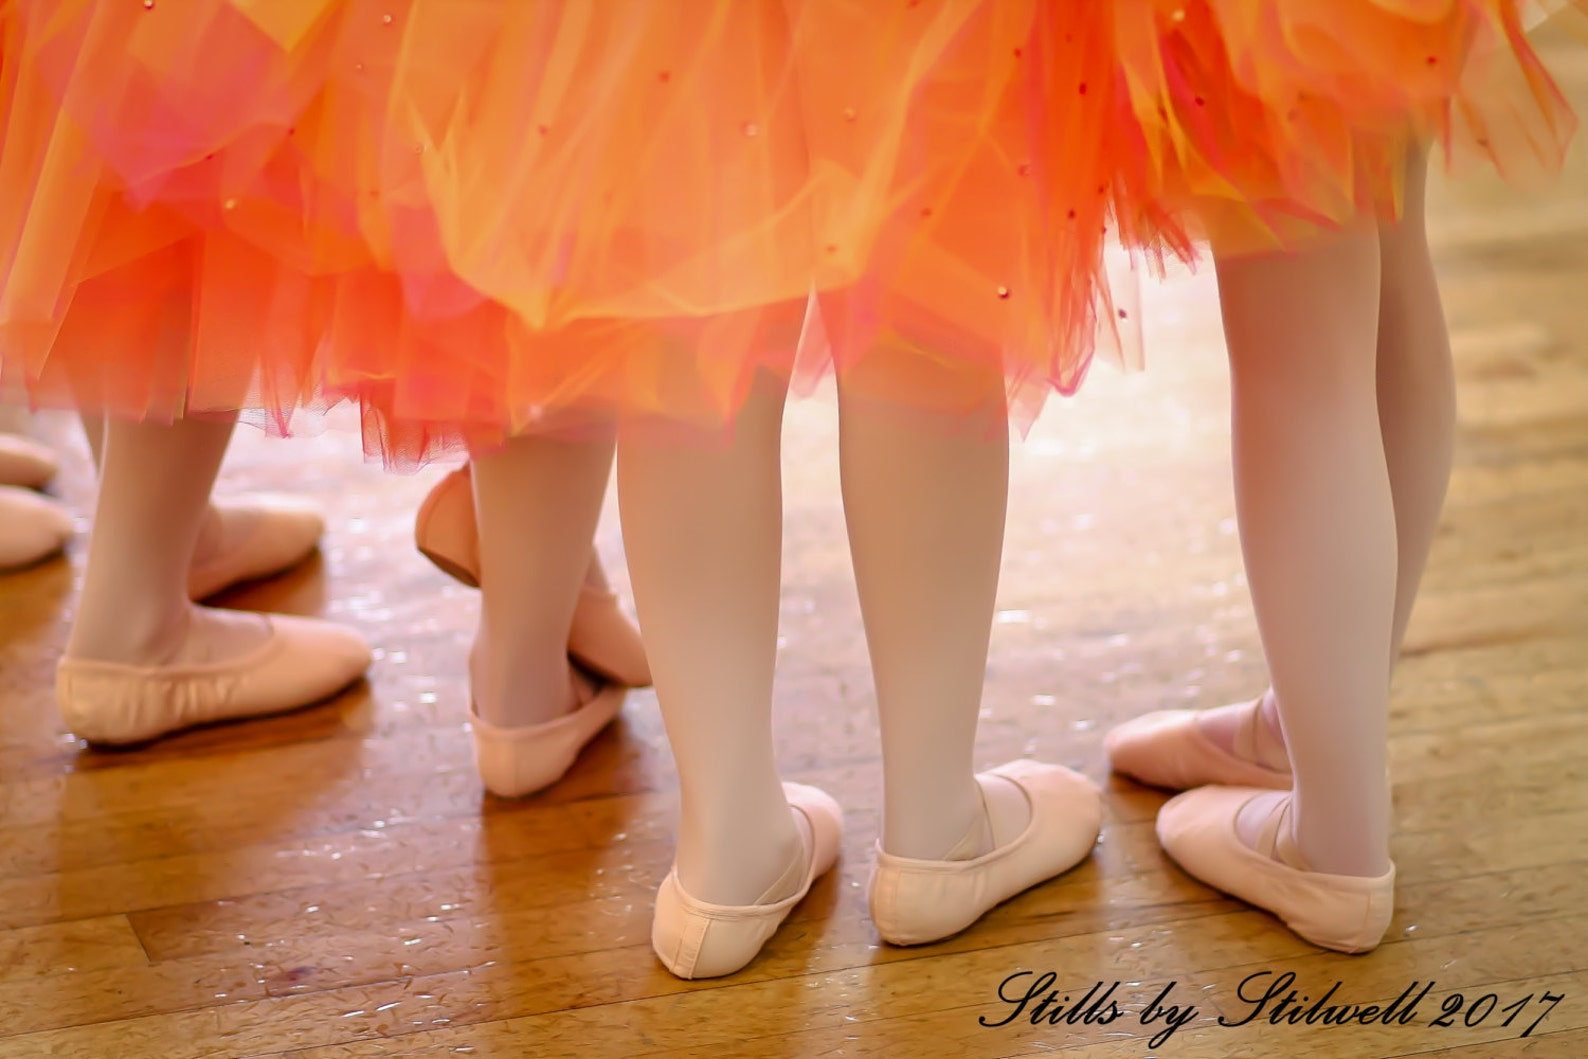 ballerina feet dancing ballerina digital download coral room dance studio decor little girl ballerinas ballet art coral tulle an